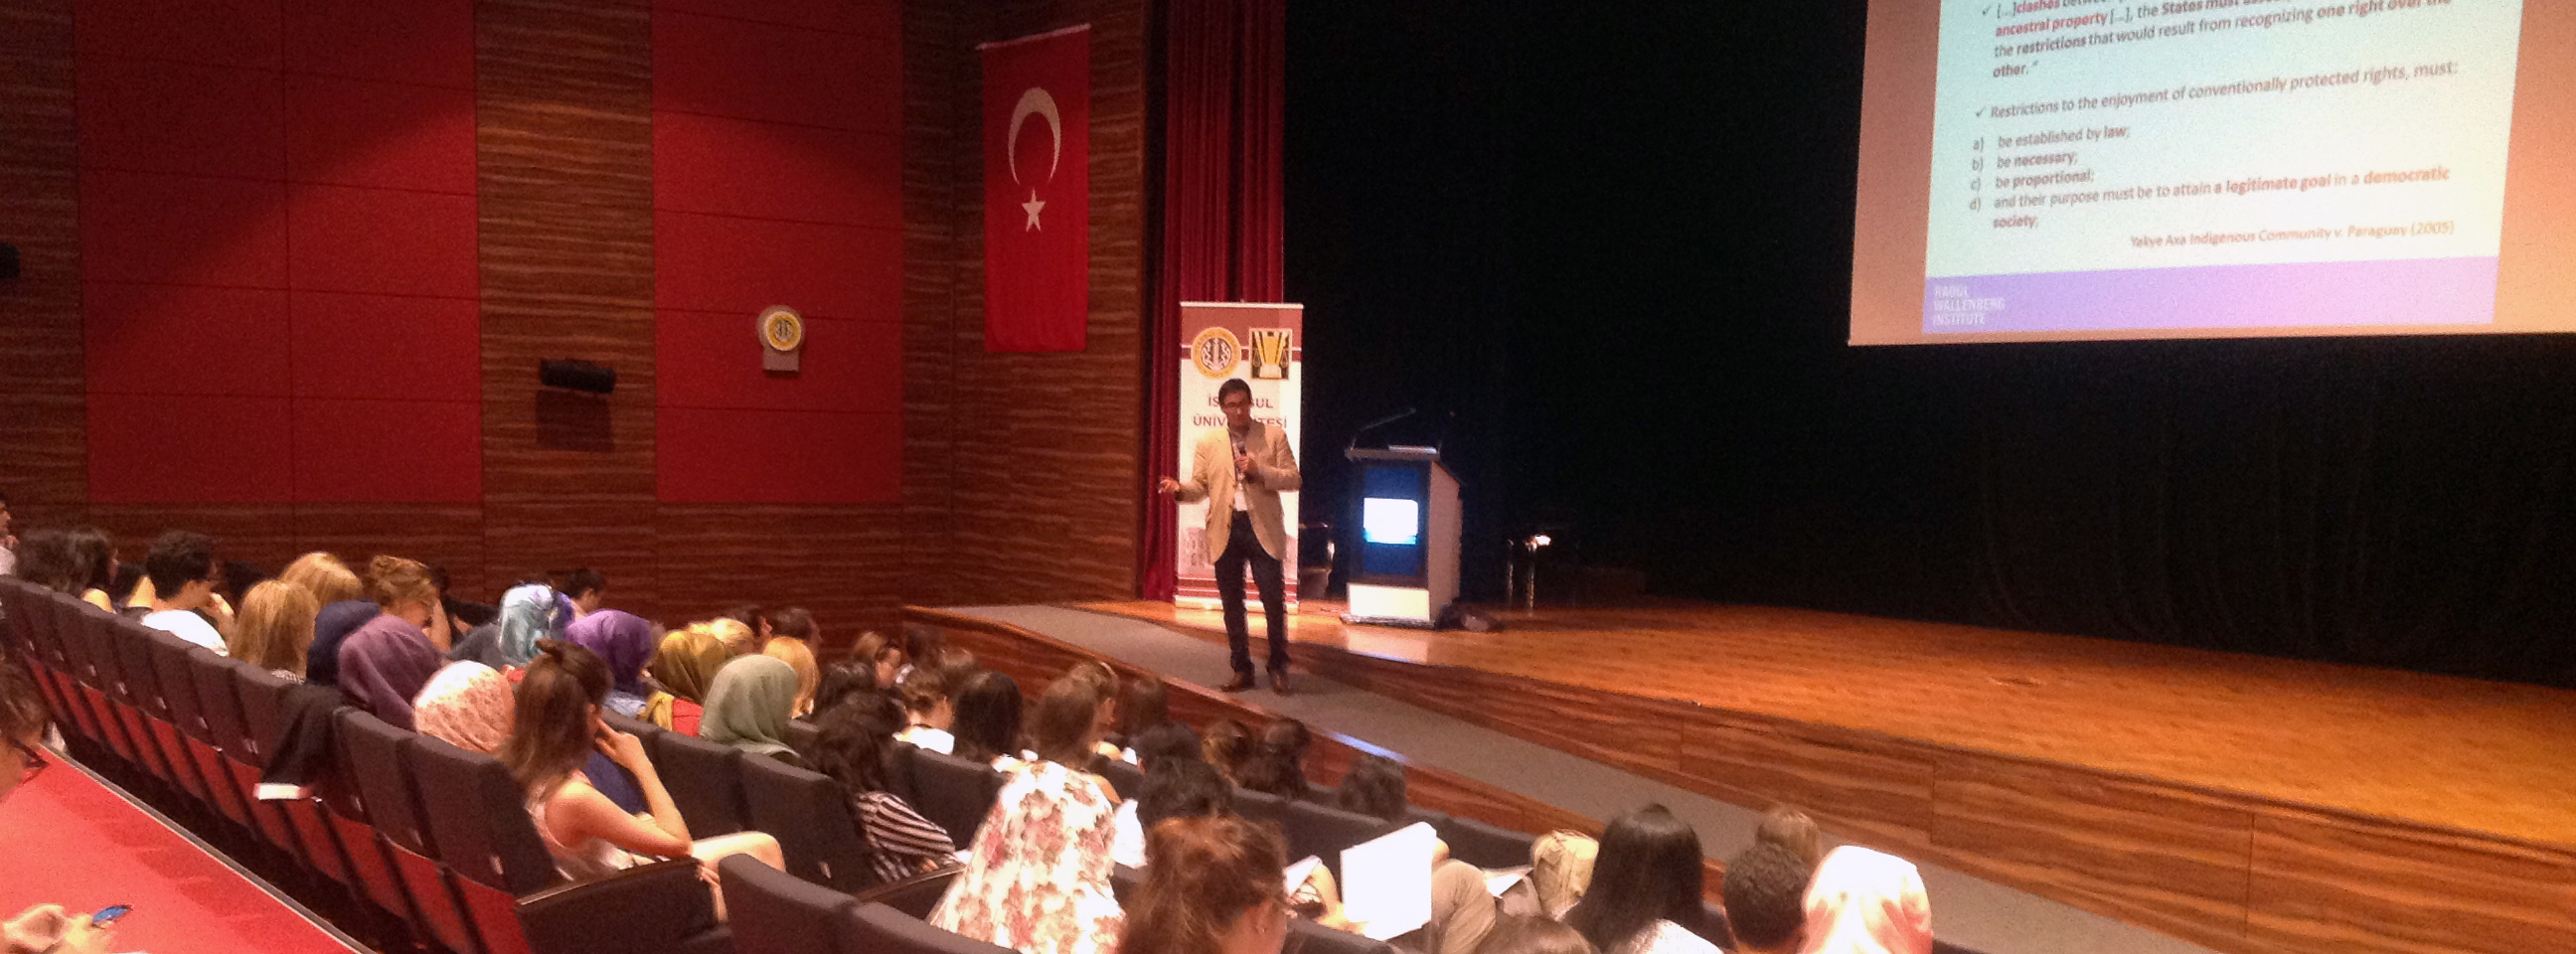 How We Work With Human Rights in Turkey